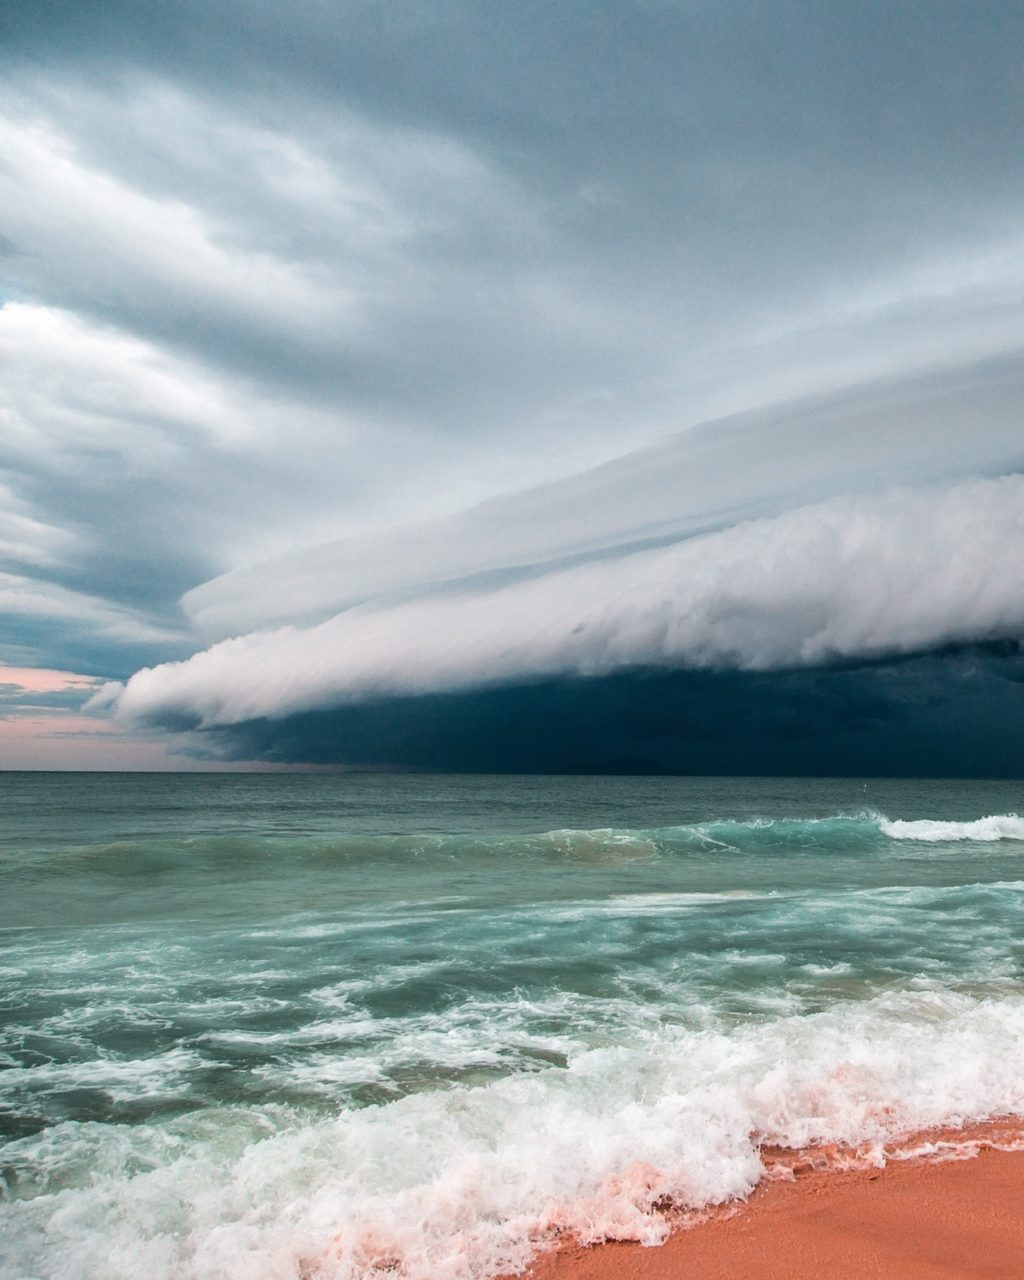 Storm front over water.